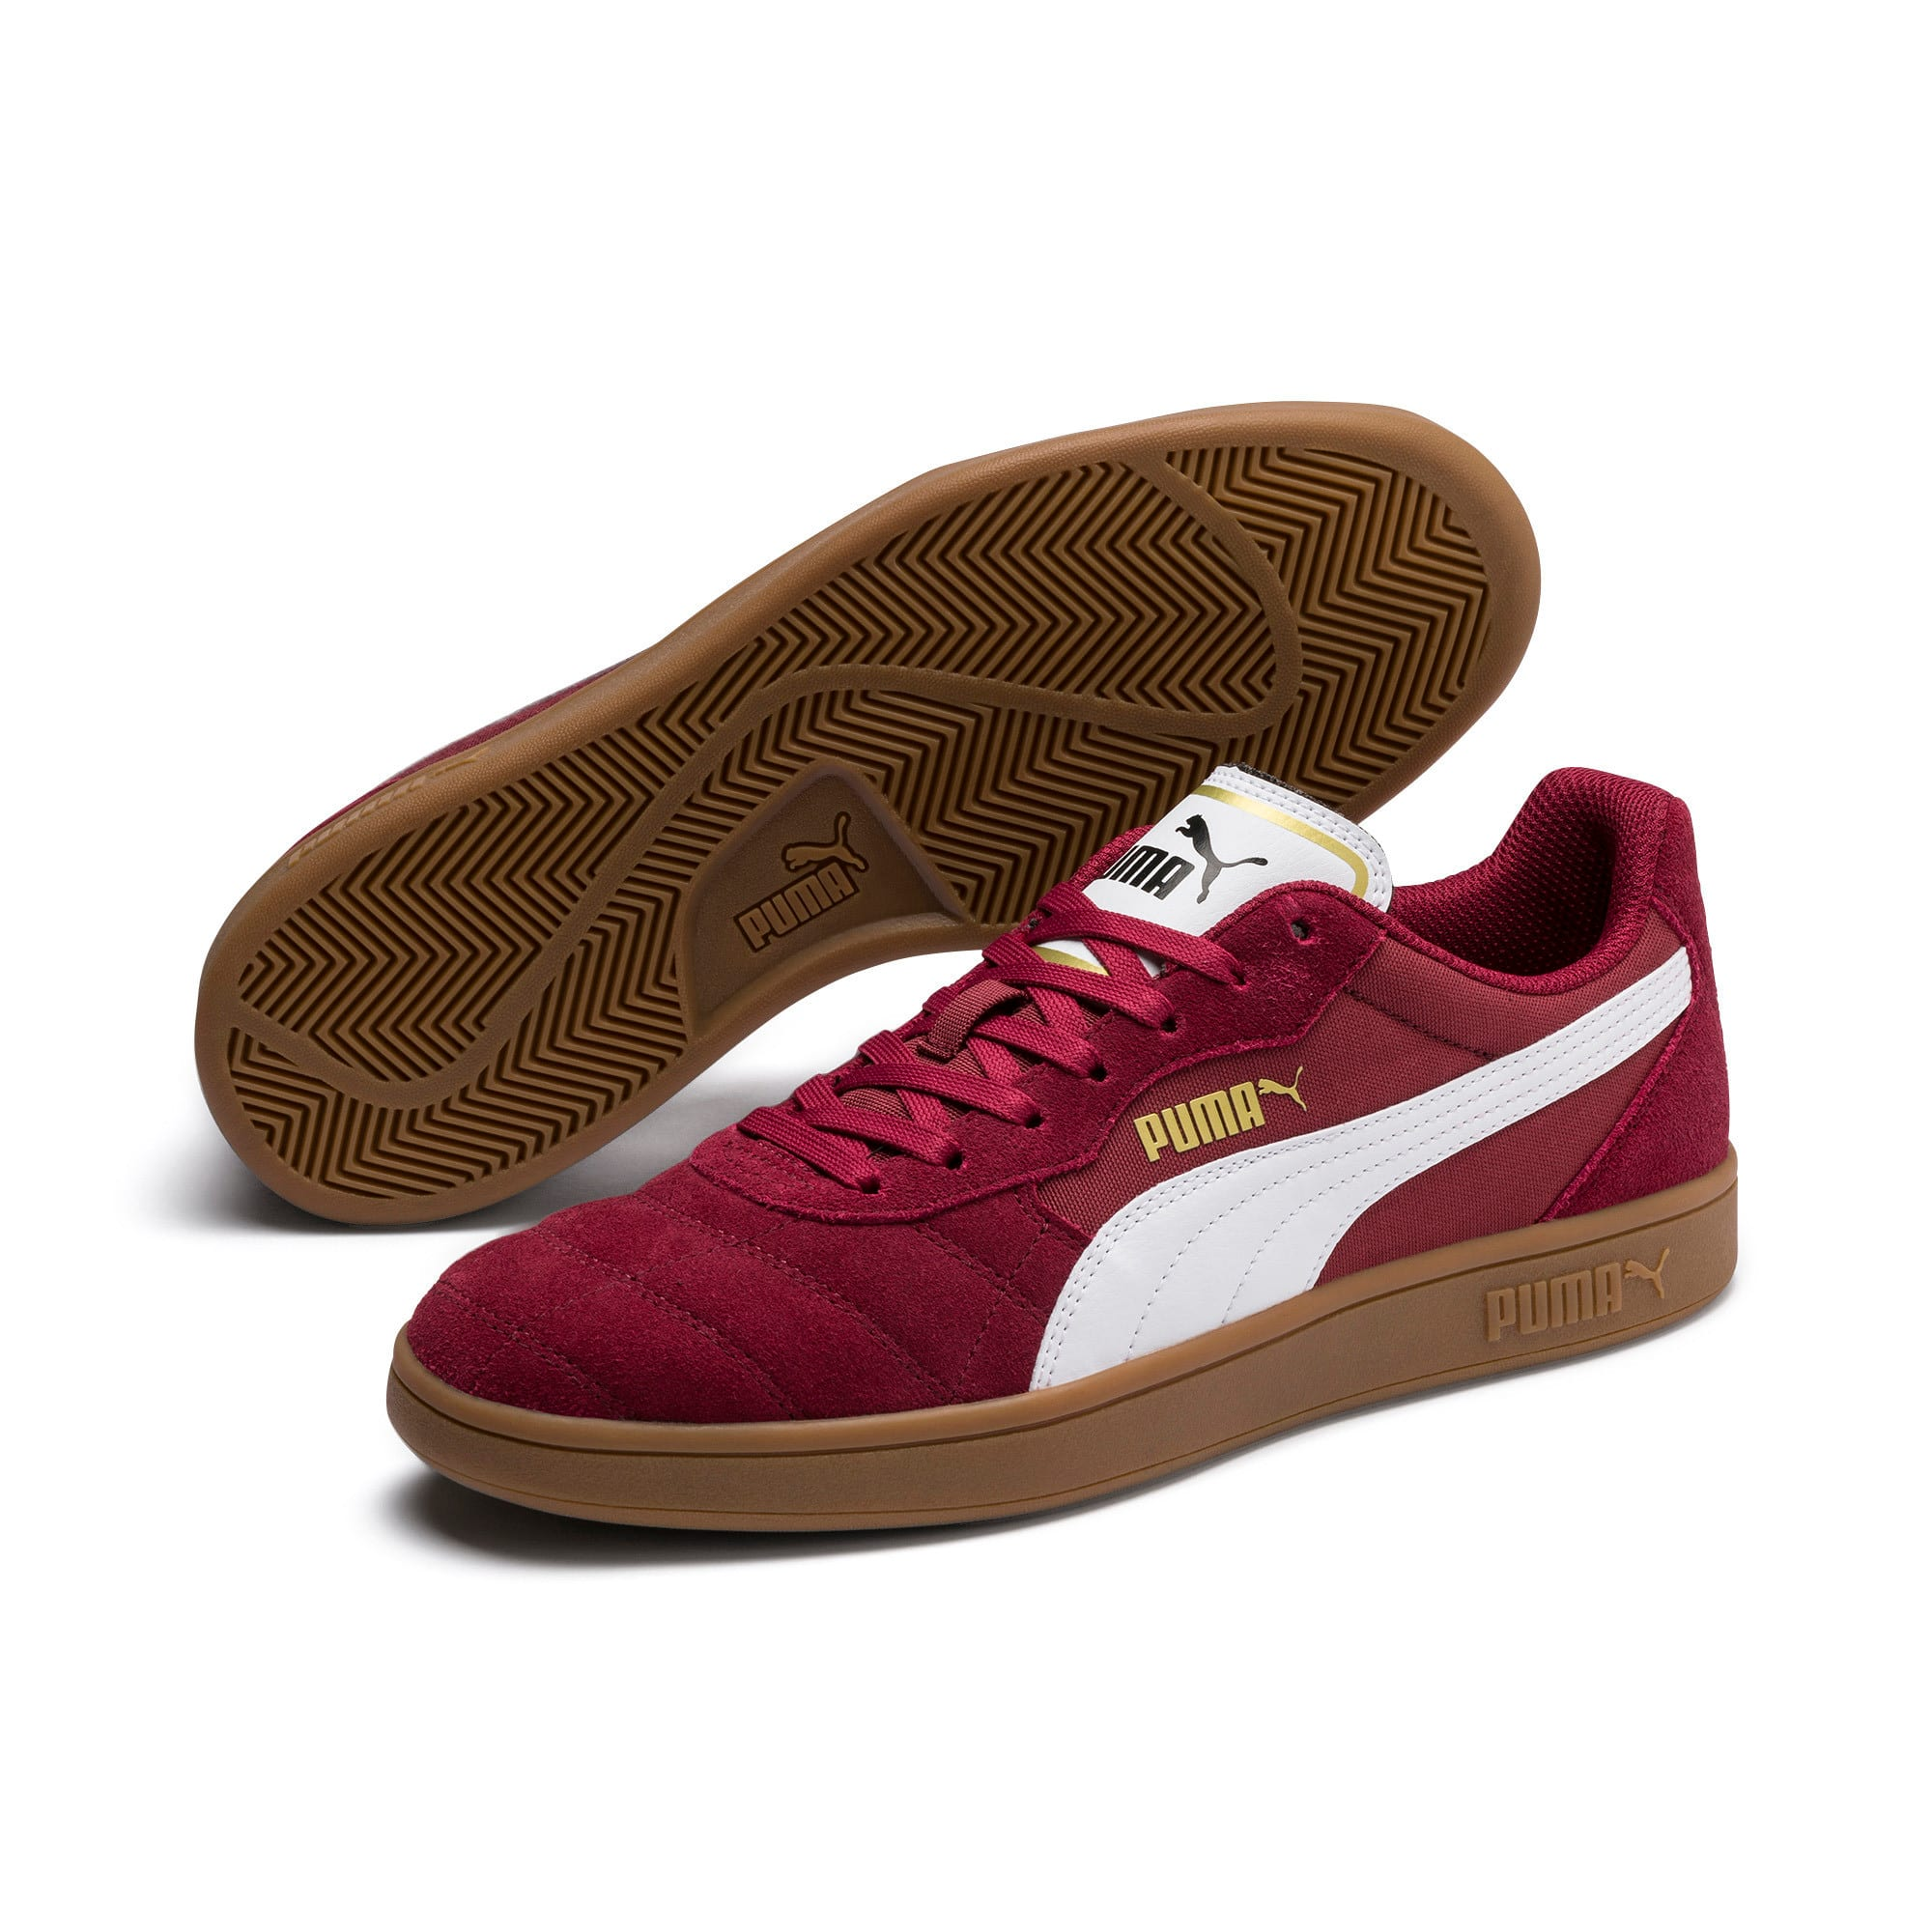 Thumbnail 2 of Astro Kick Sneakers, Cordovan-Puma White, medium